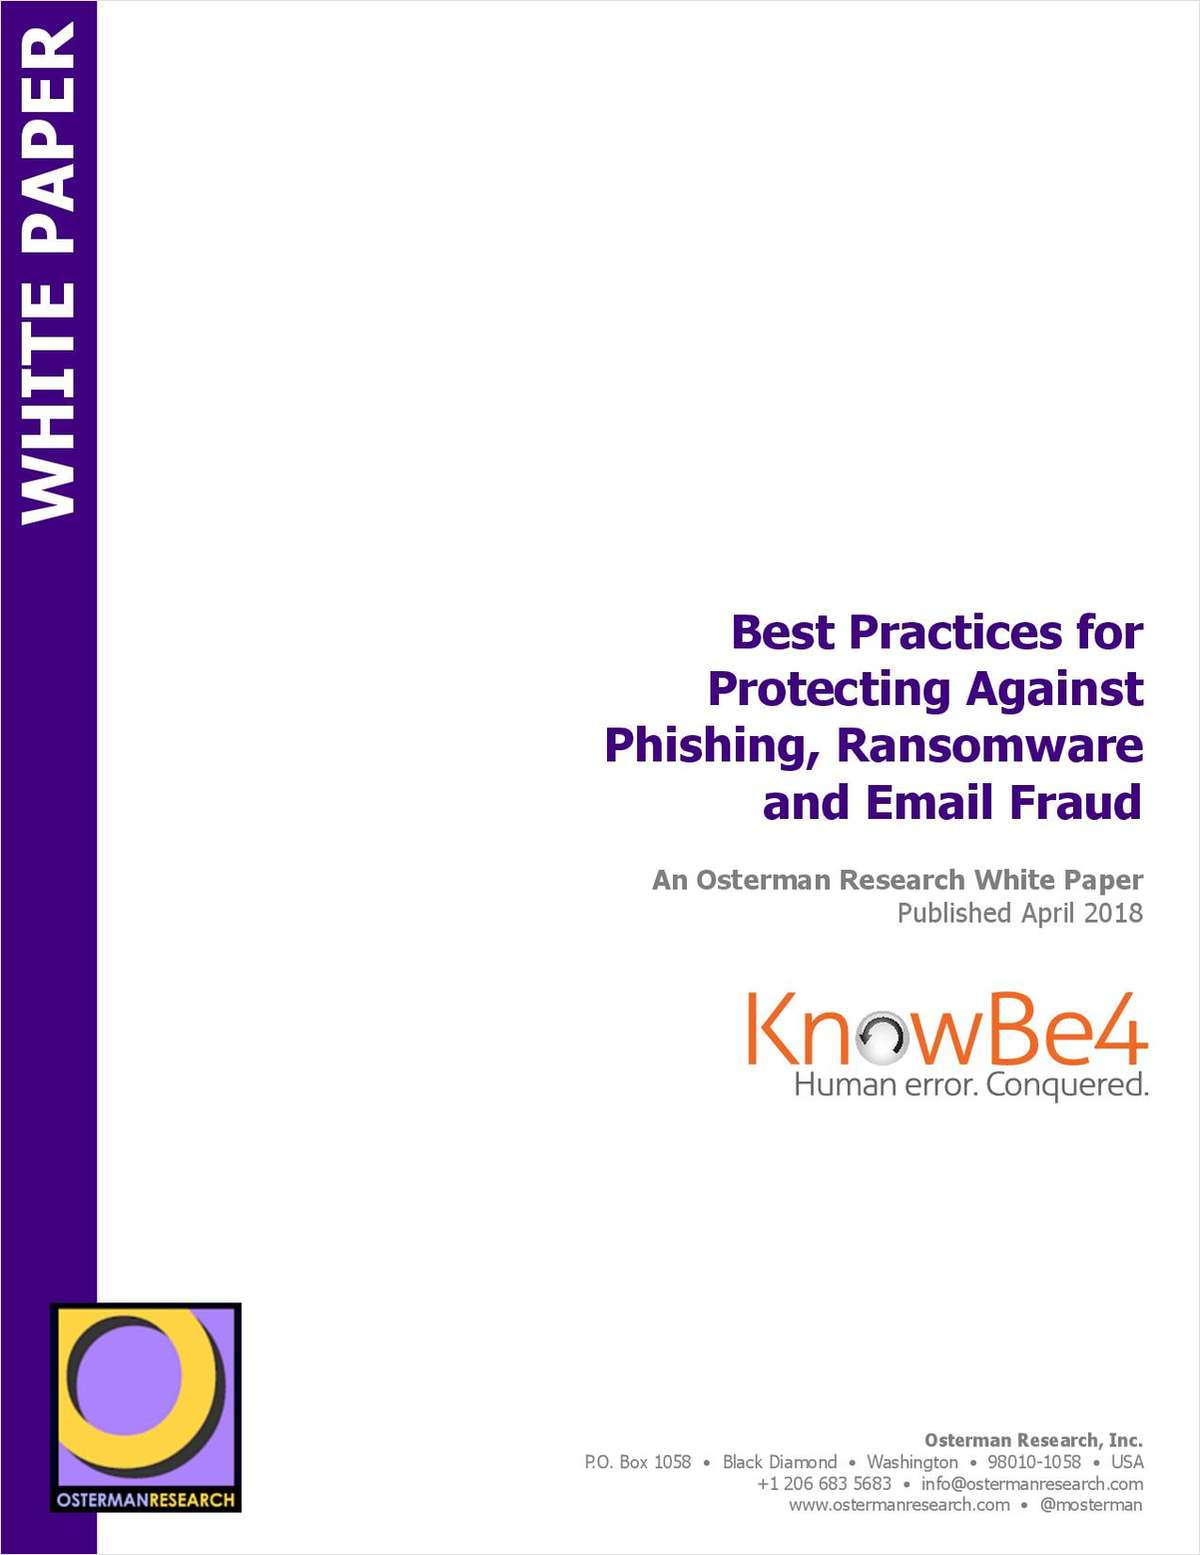 Best Practices for Protecting Against Phishing, Ransomware and Email Fraud